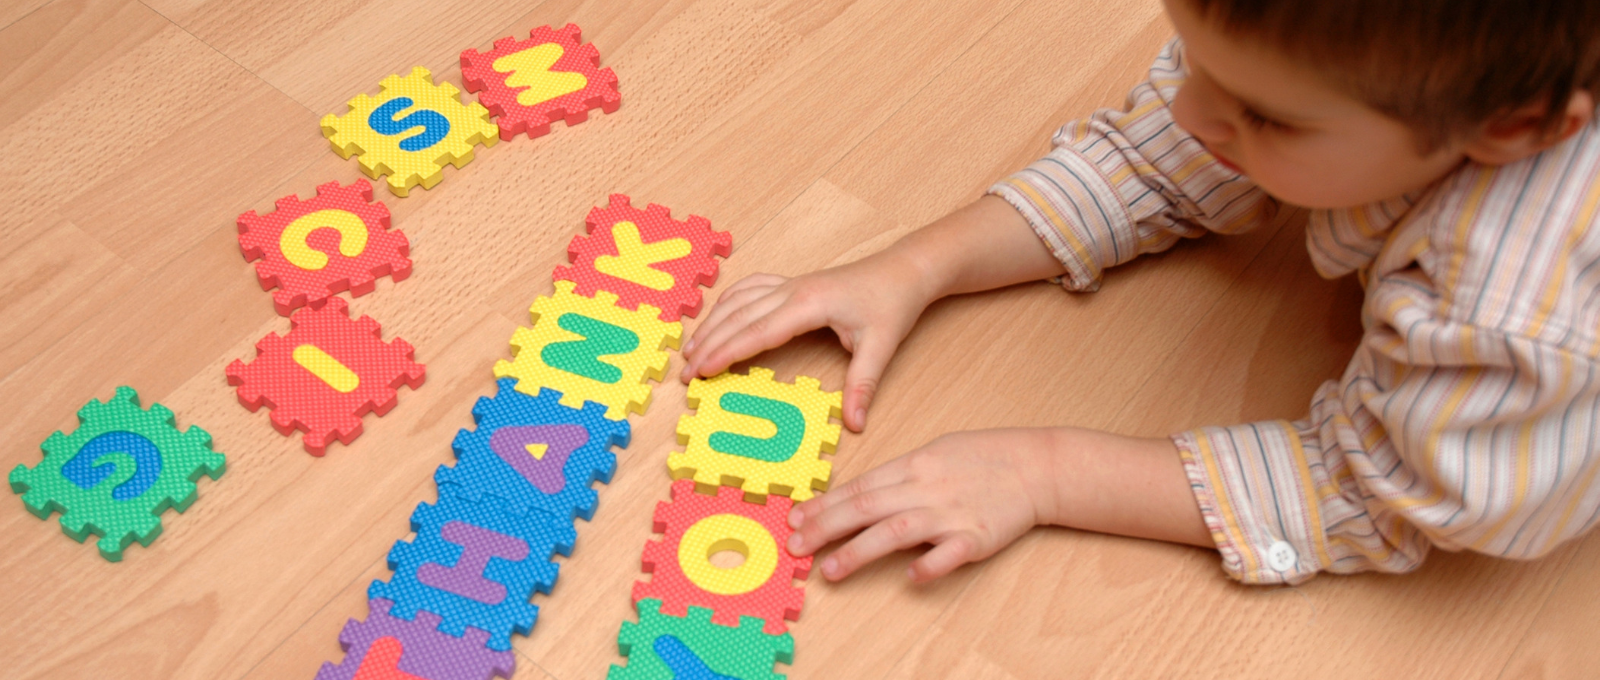 "Child playing with letters on floor that spell ""thank you"" symbolizing gratitude"